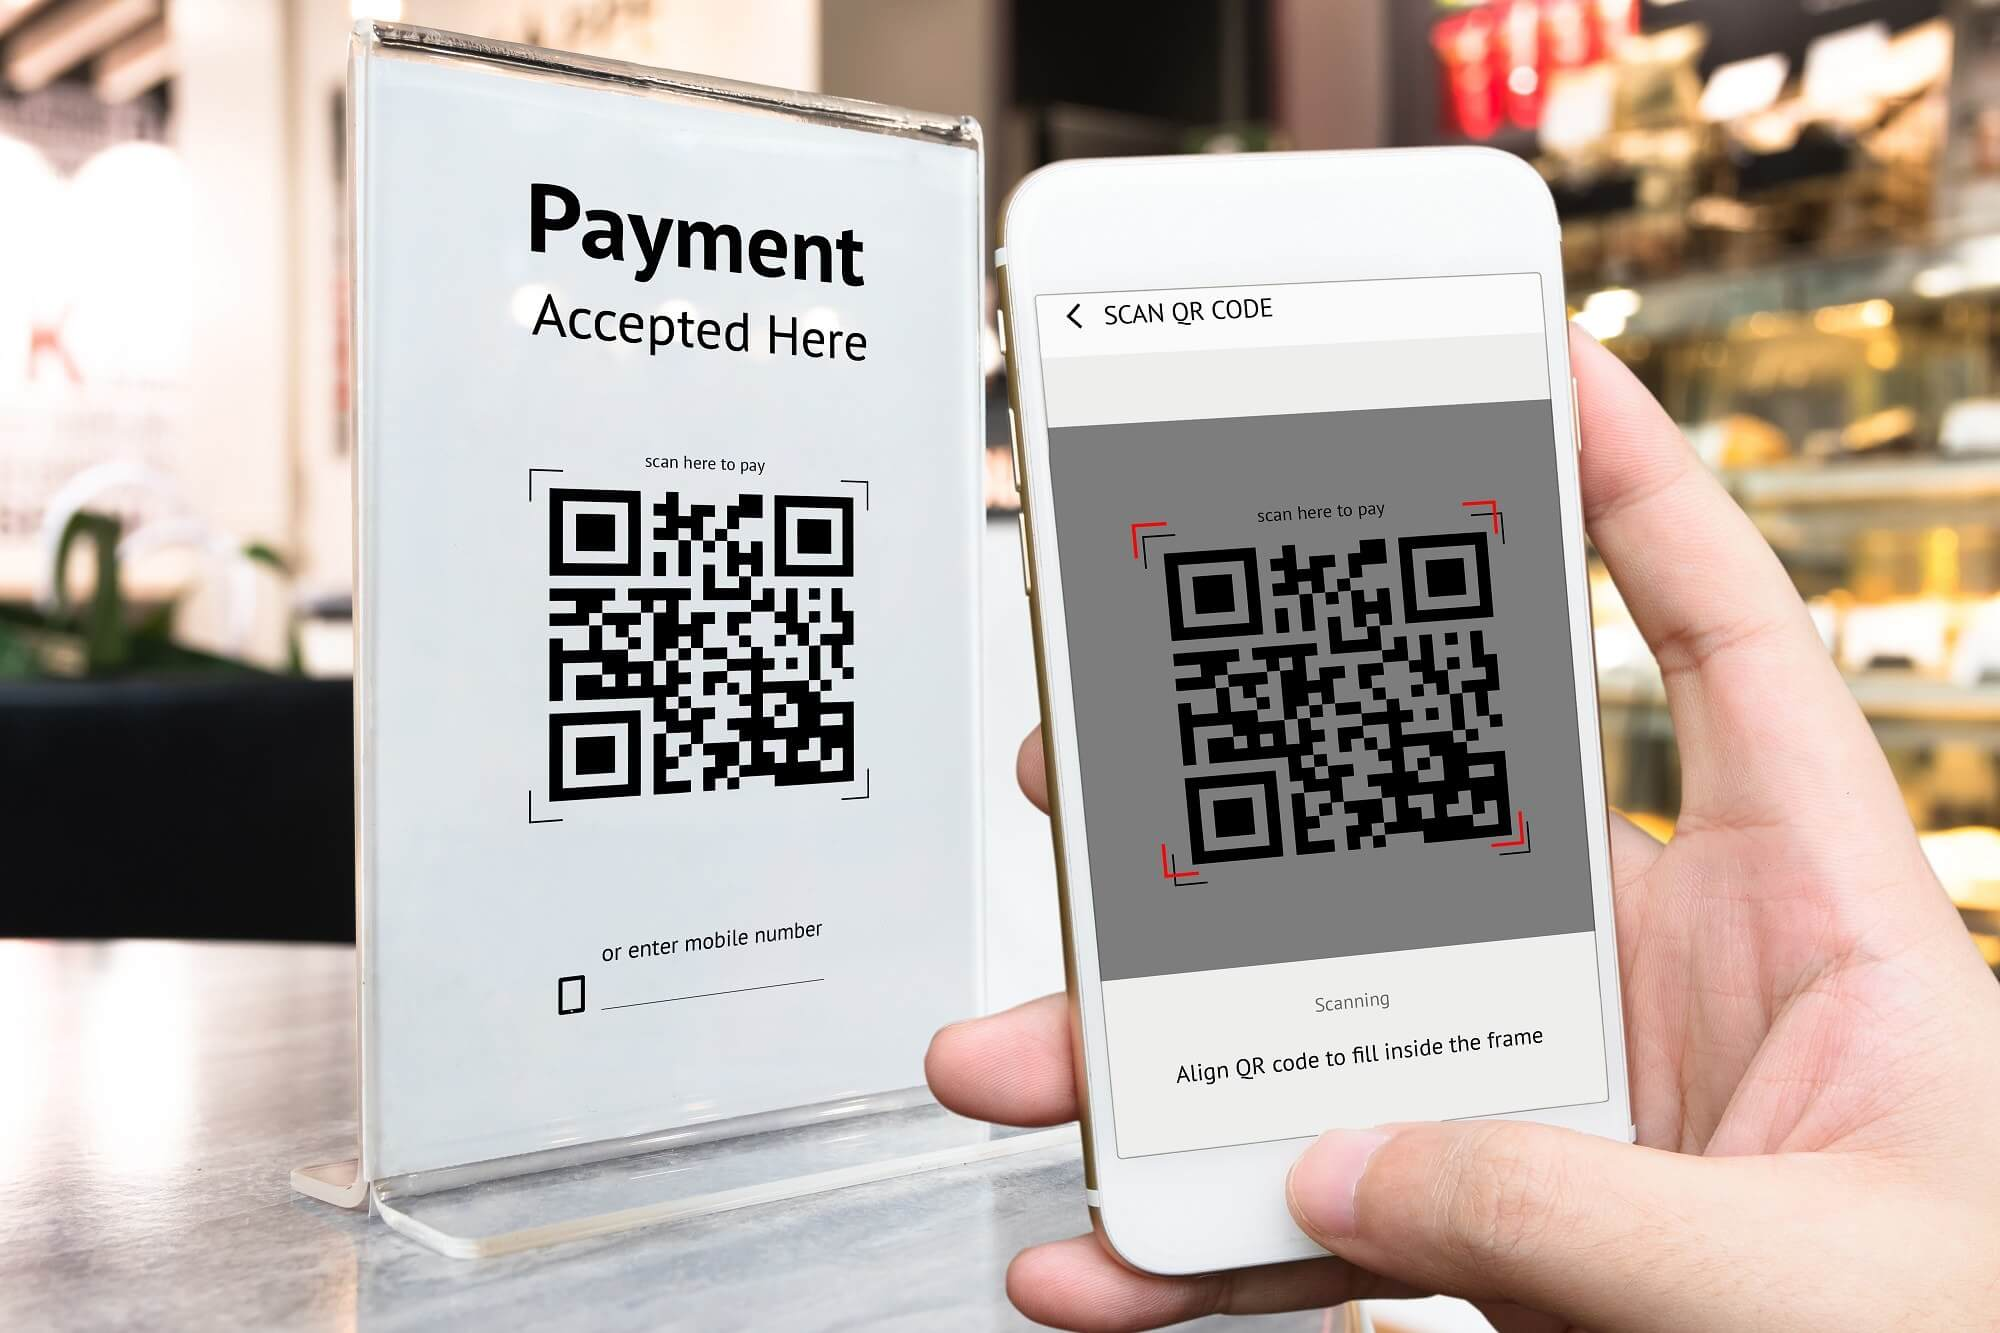 Is Apple Pay working on a QR code based payments system?